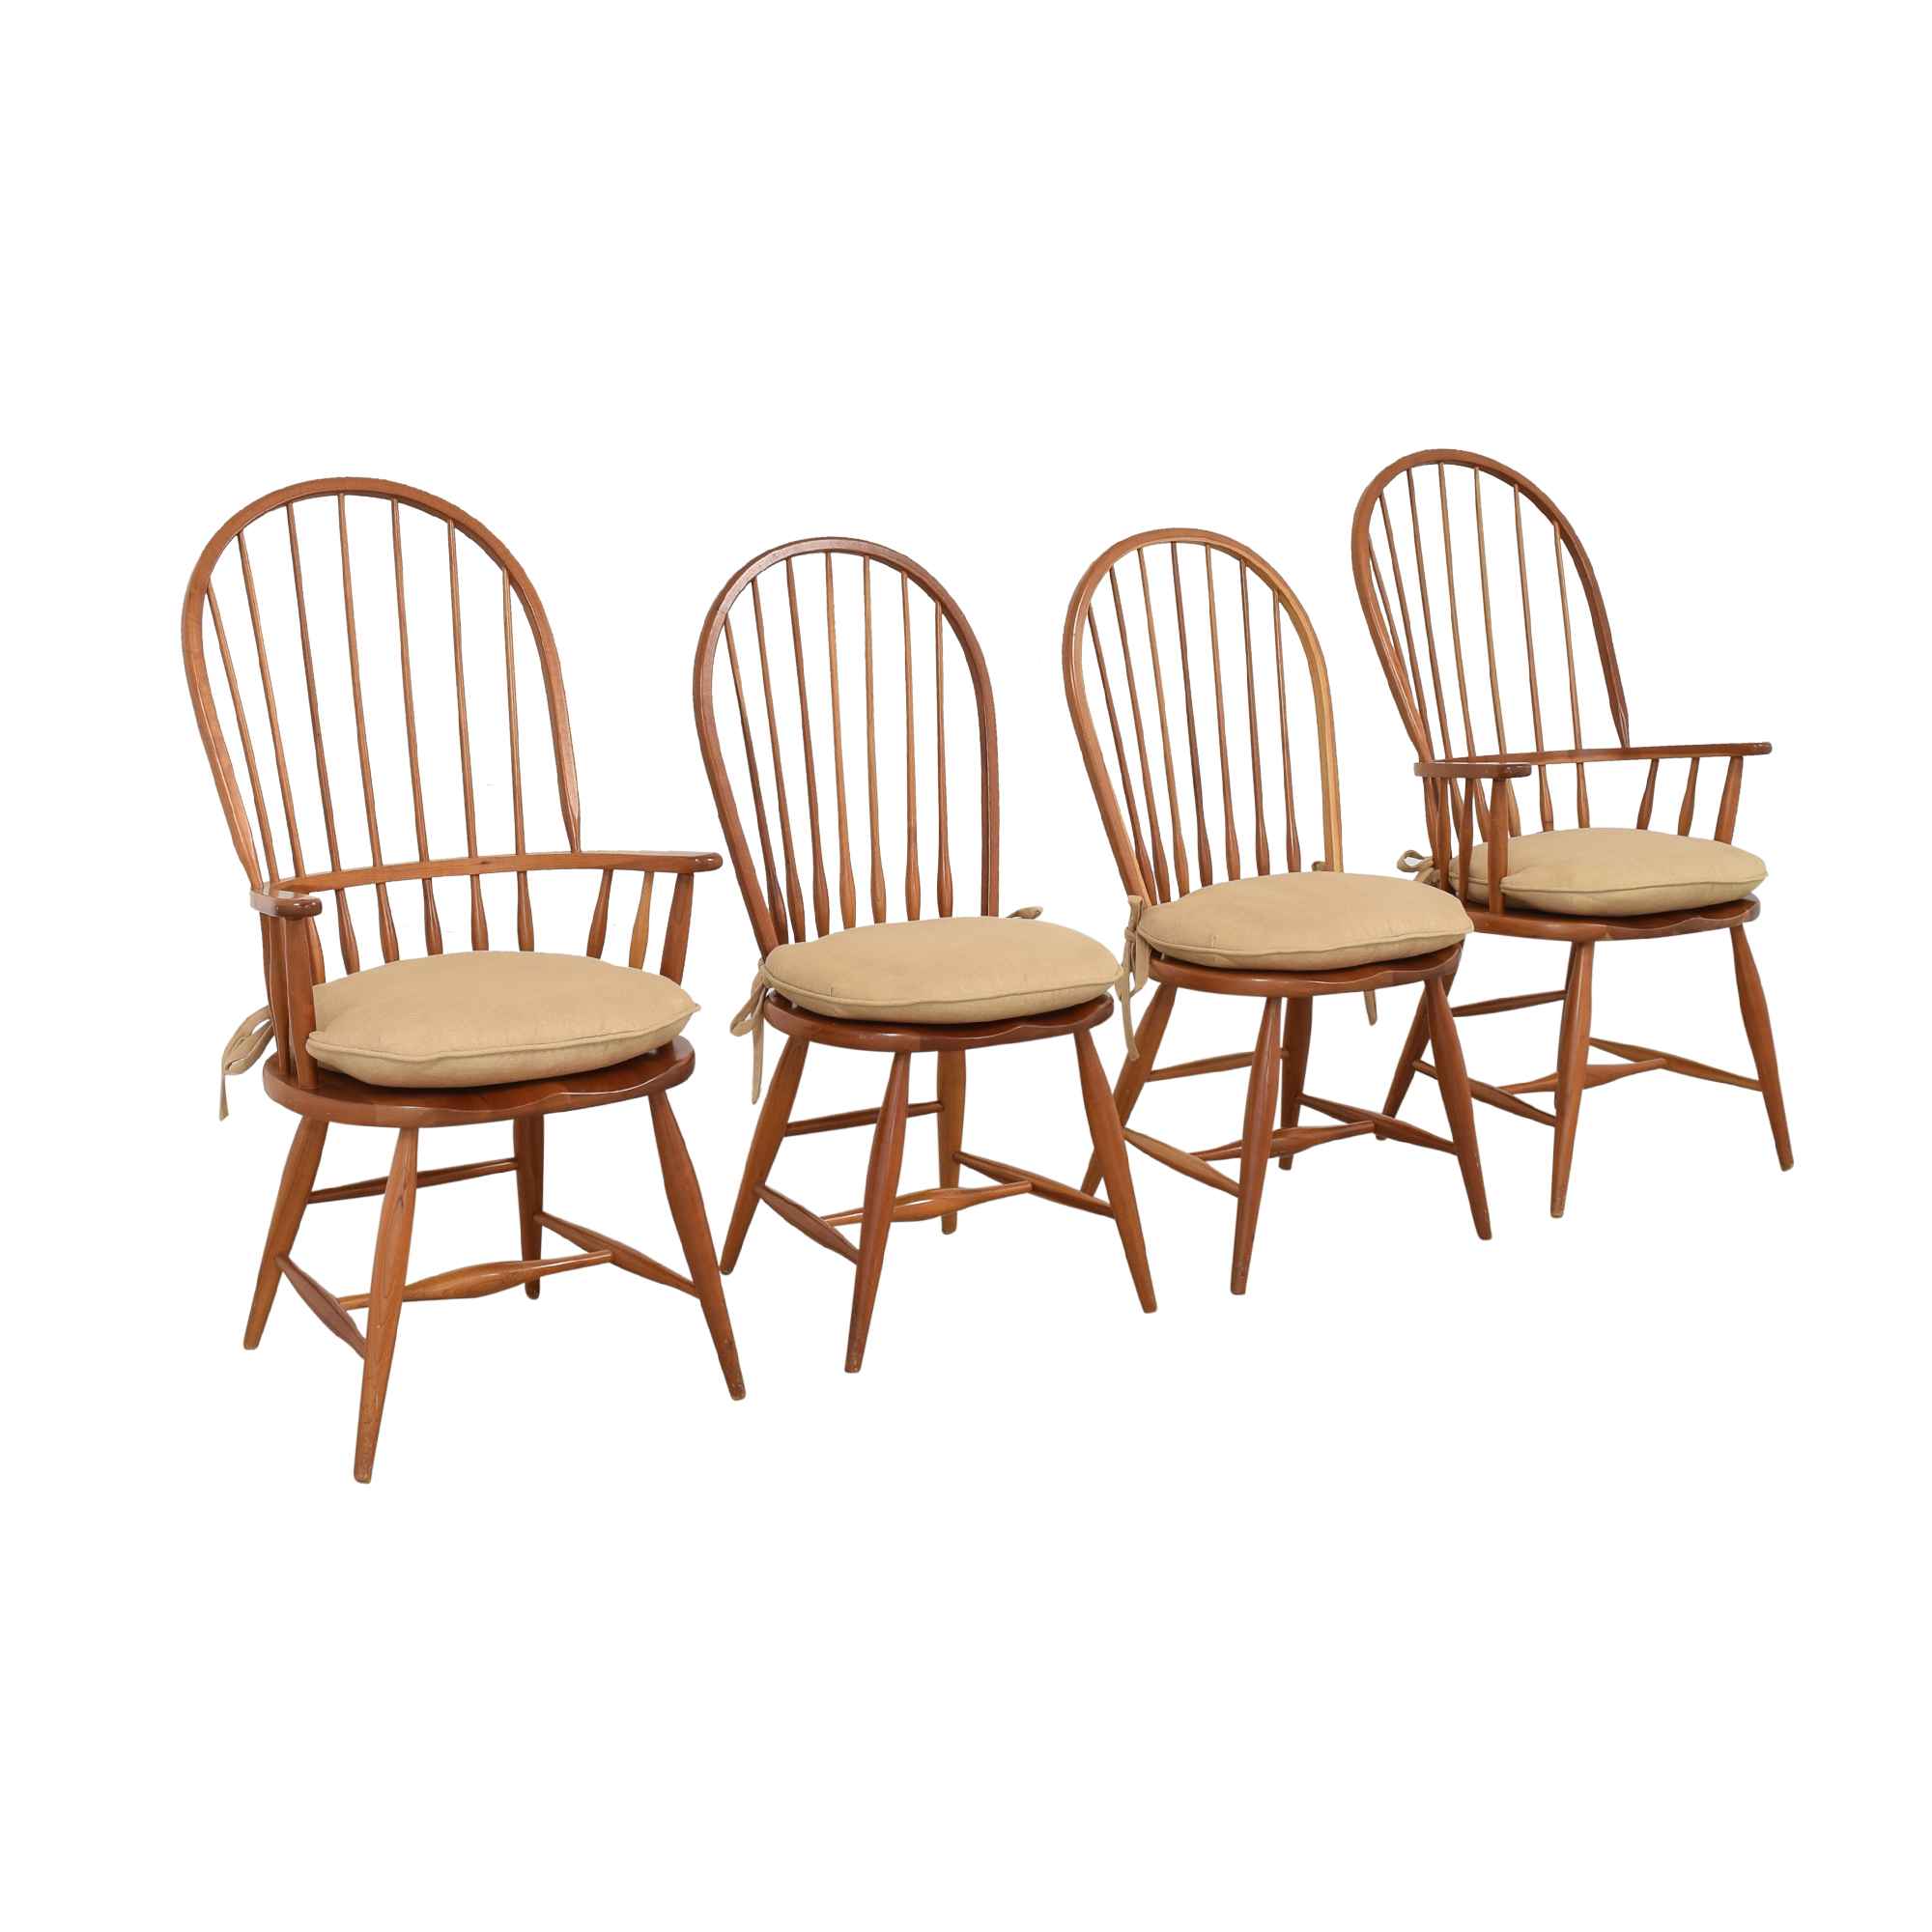 Asher Benjamin Studio Asher Benjamin Studio Windsor Back Dining Room Chairs pa